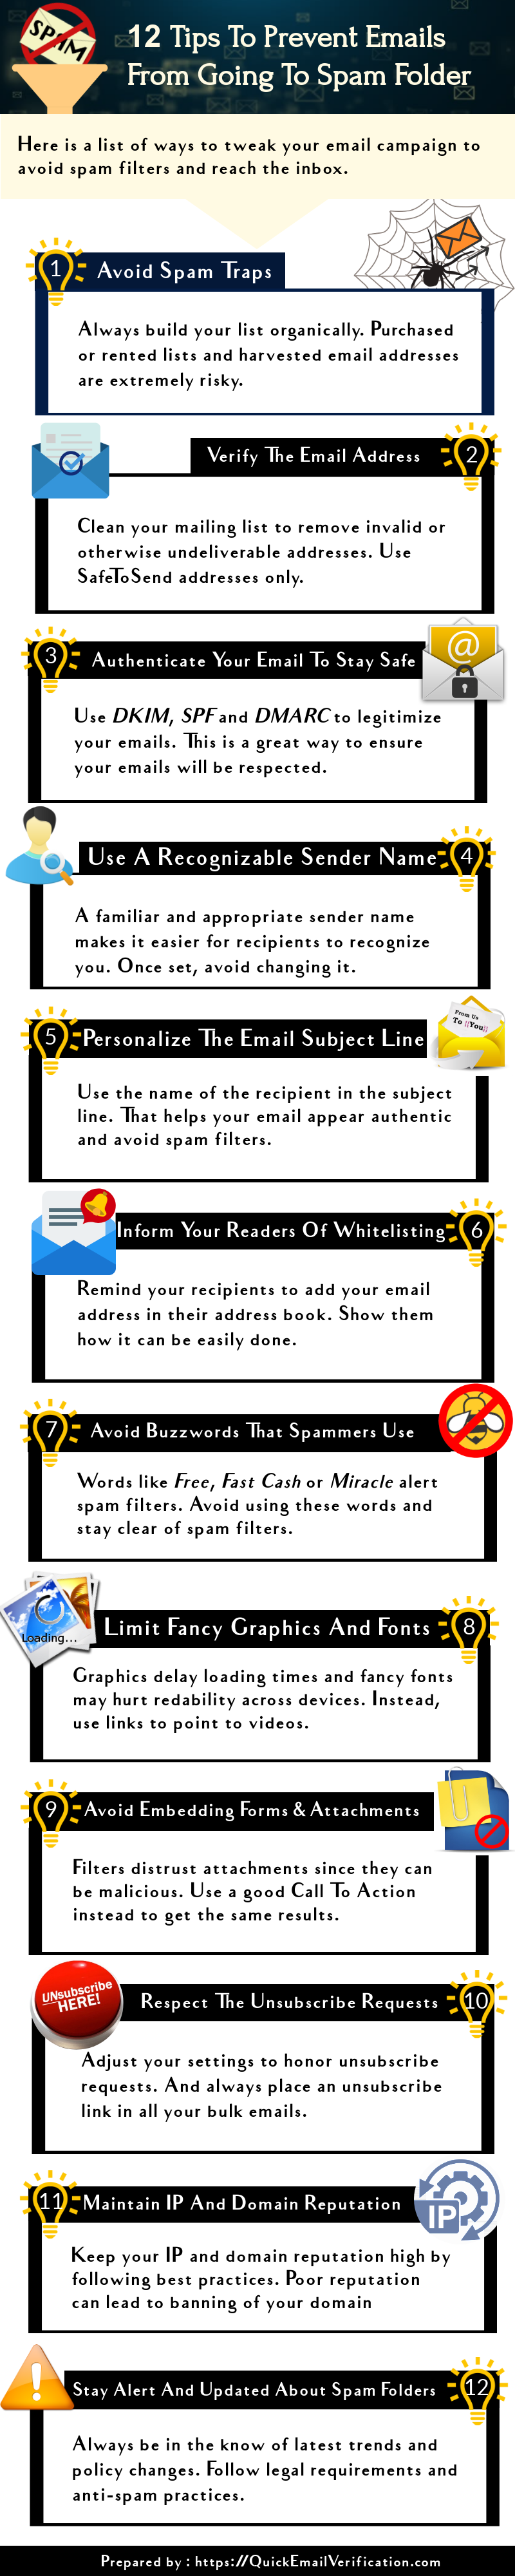 How to prevent emails from going to spam folder